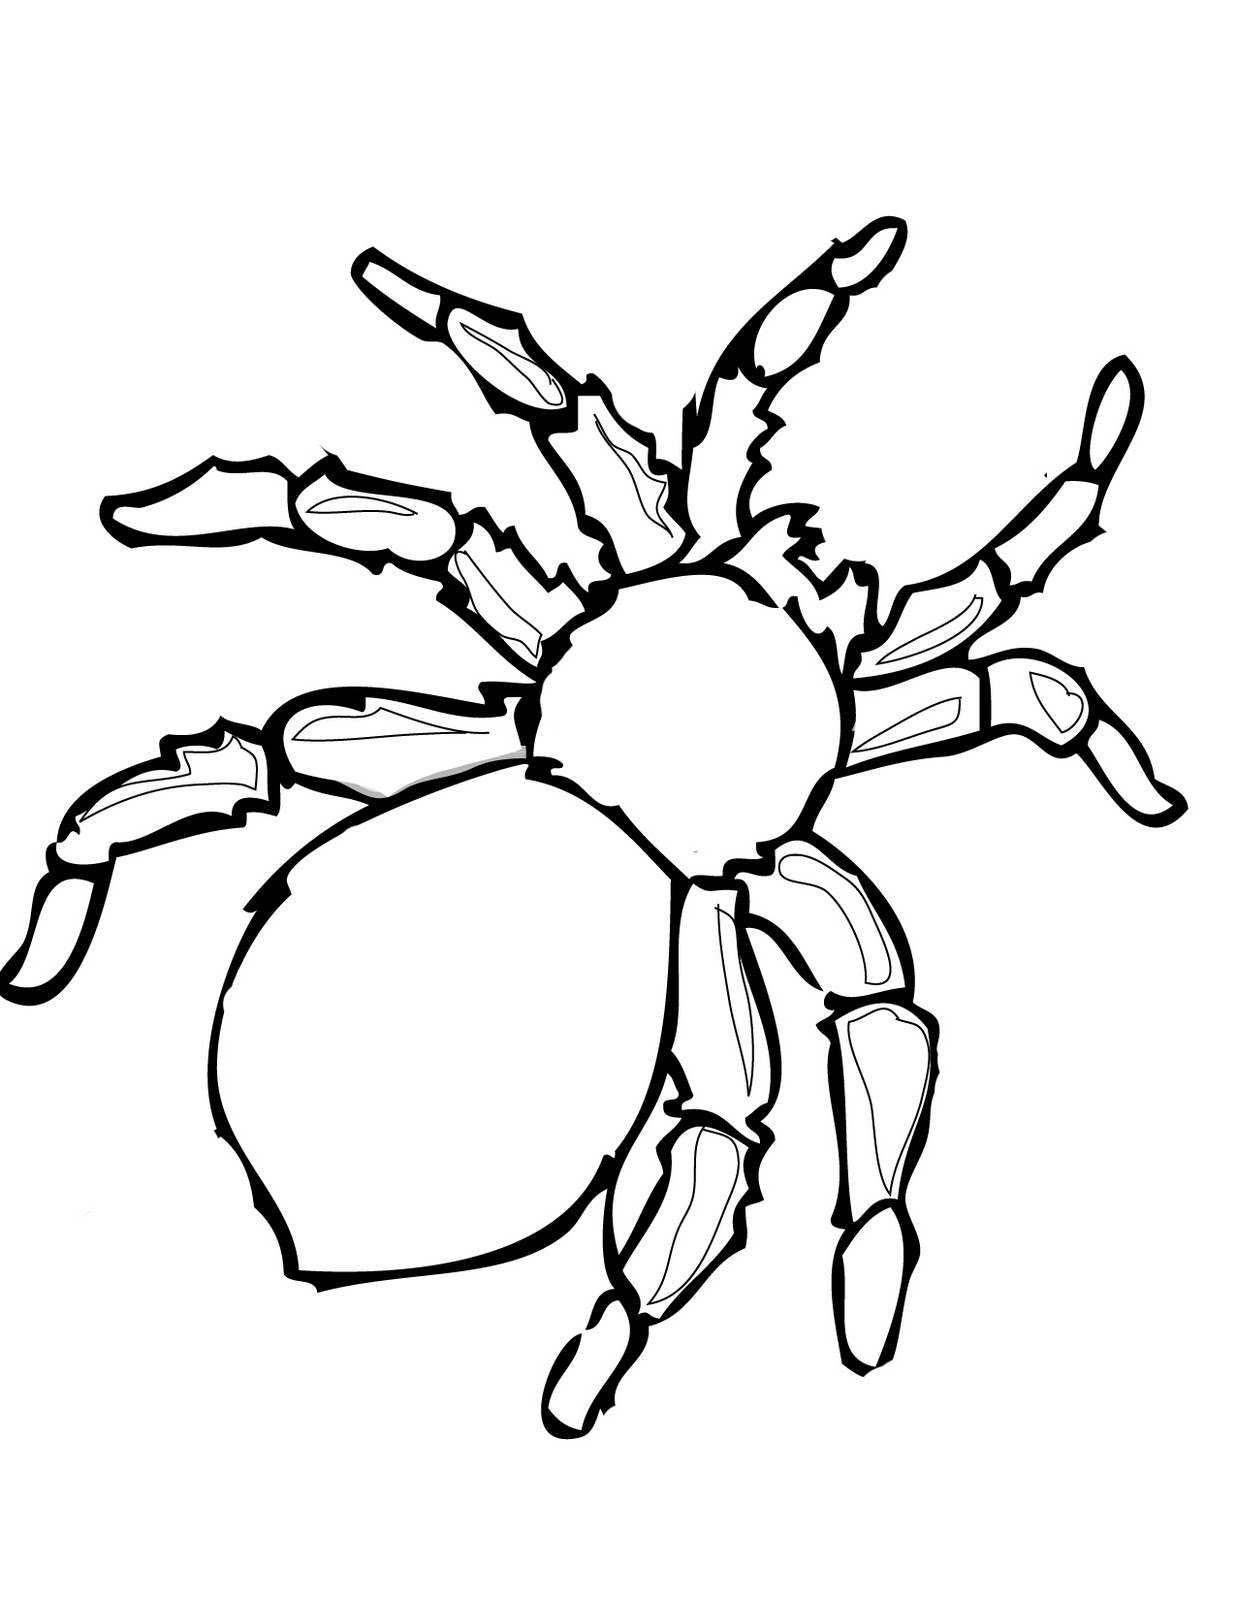 printable spiders free printable spider coloring pages for kids spiders printable